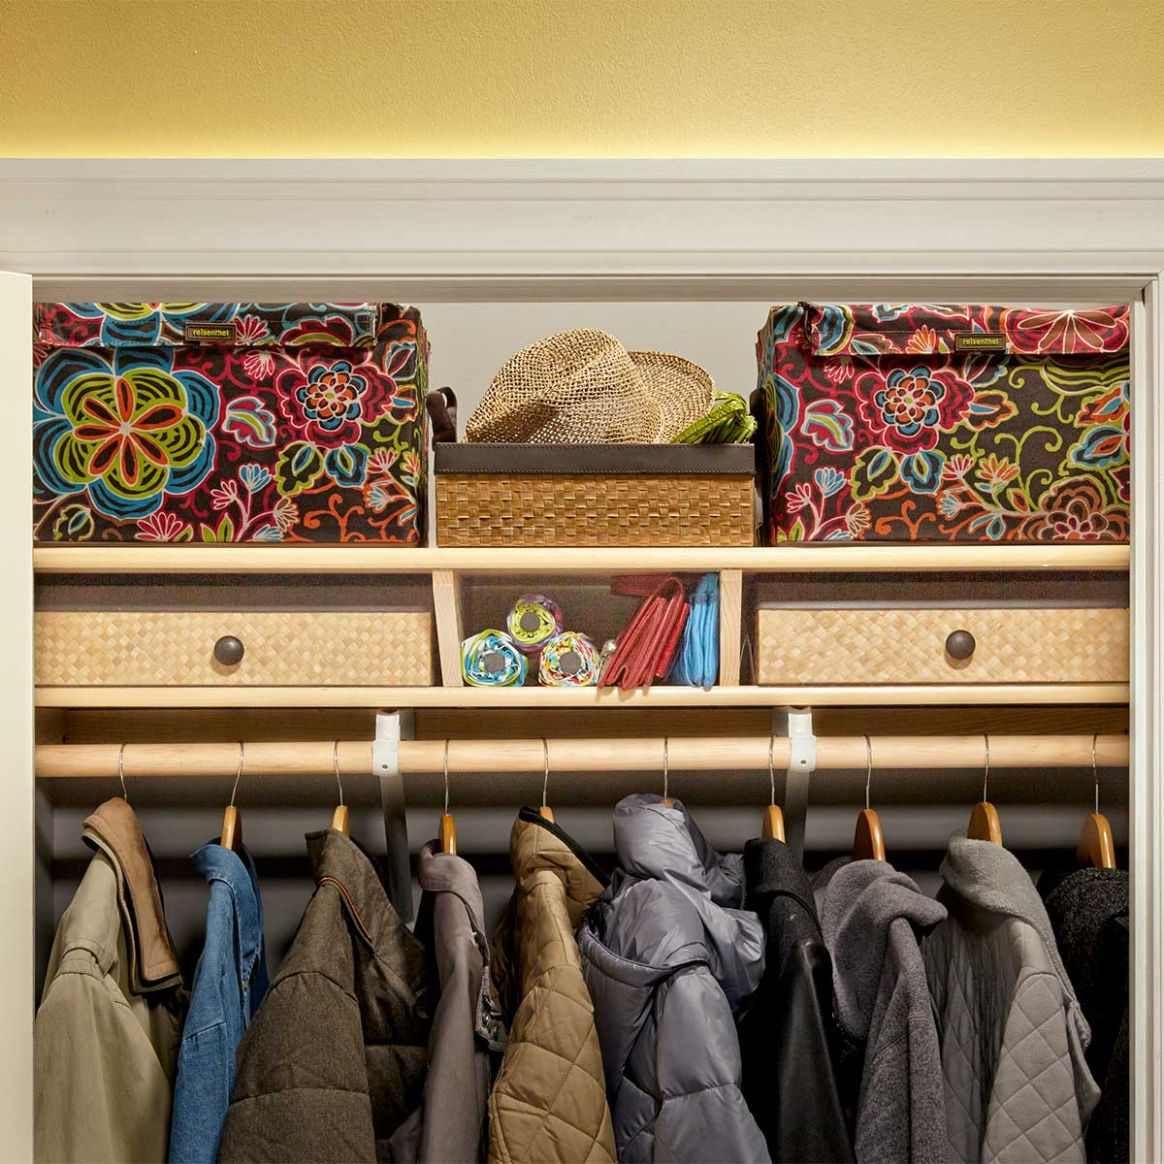 12 Cheap Closet Updates You Can DIY | The Family Handyman - closet ideas cheap